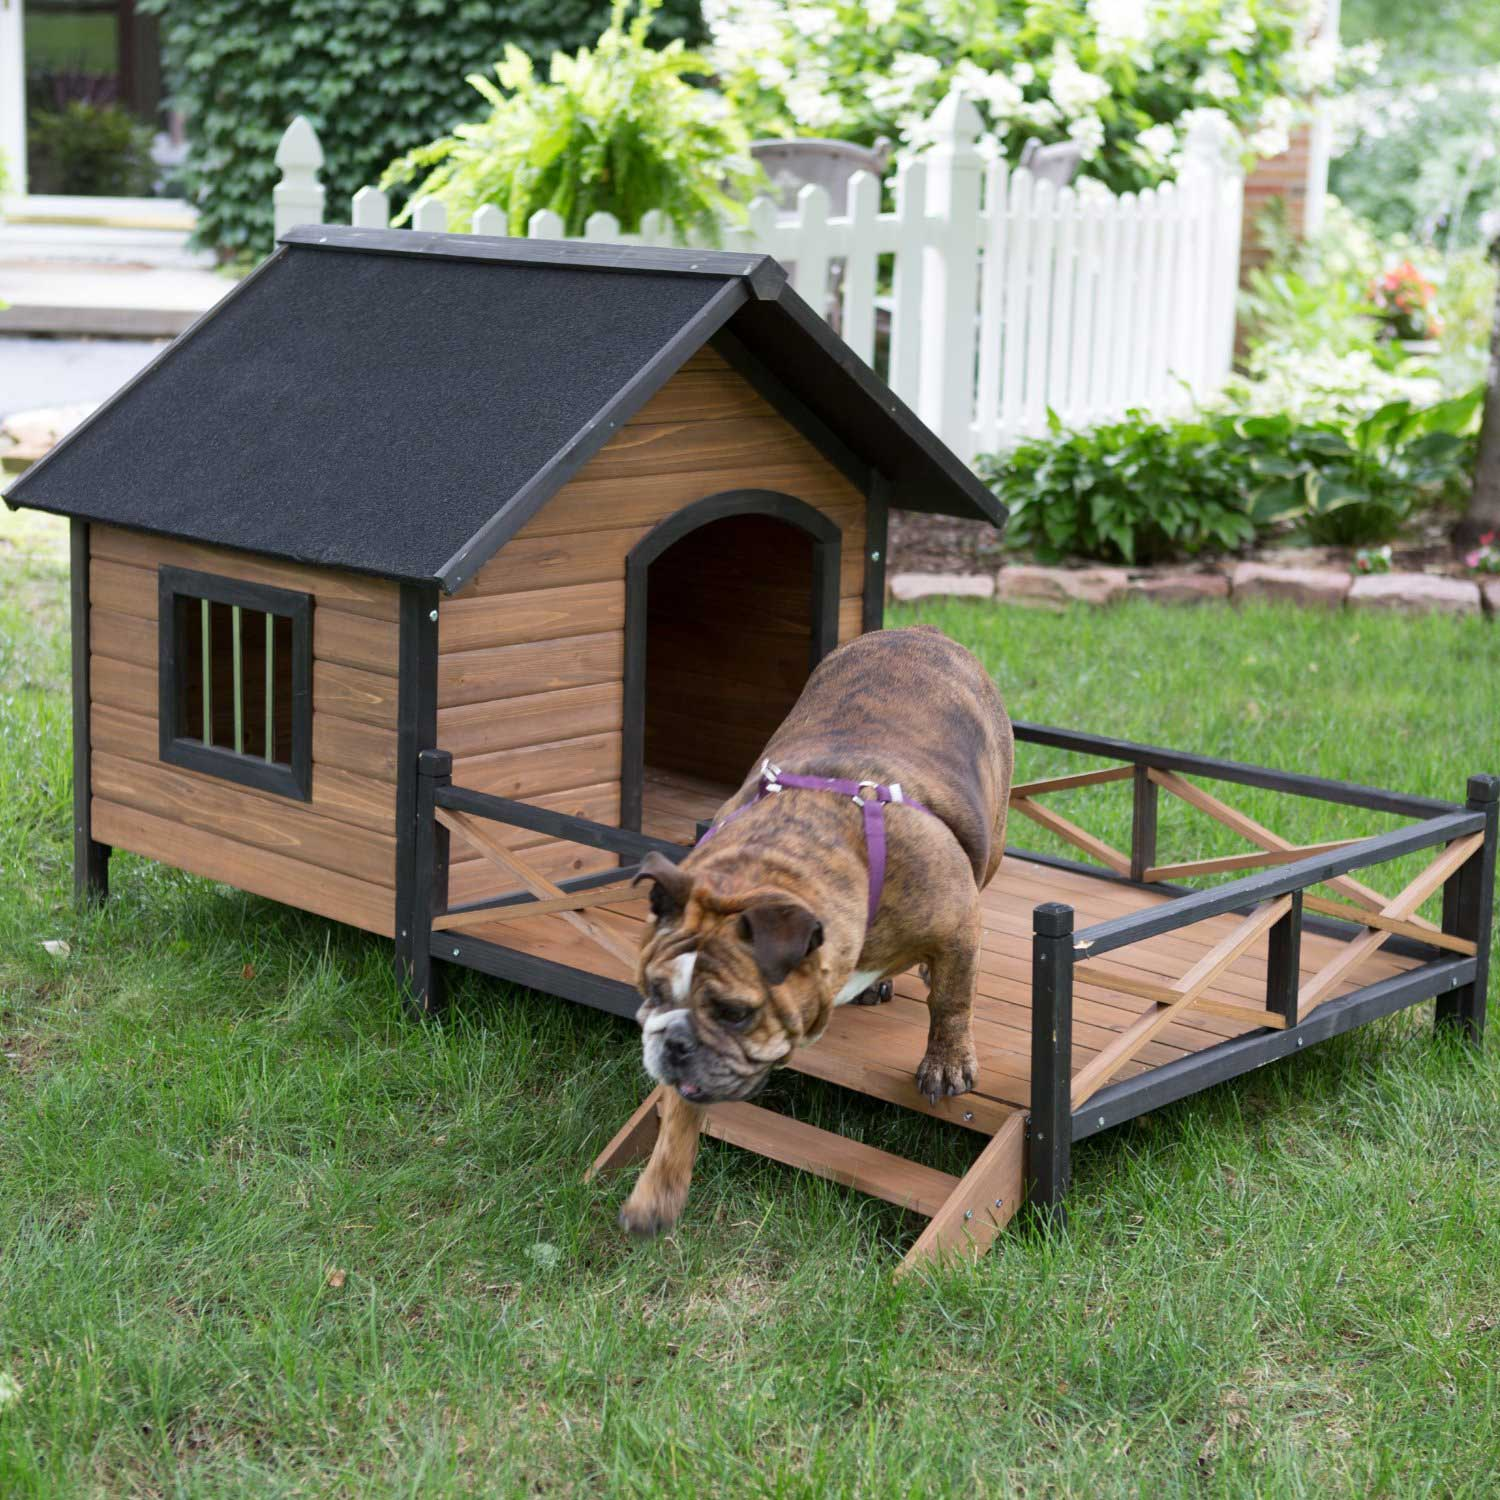 8 Backyard Ideas To Delight Your Dog: Found On: Amazon (in Stock